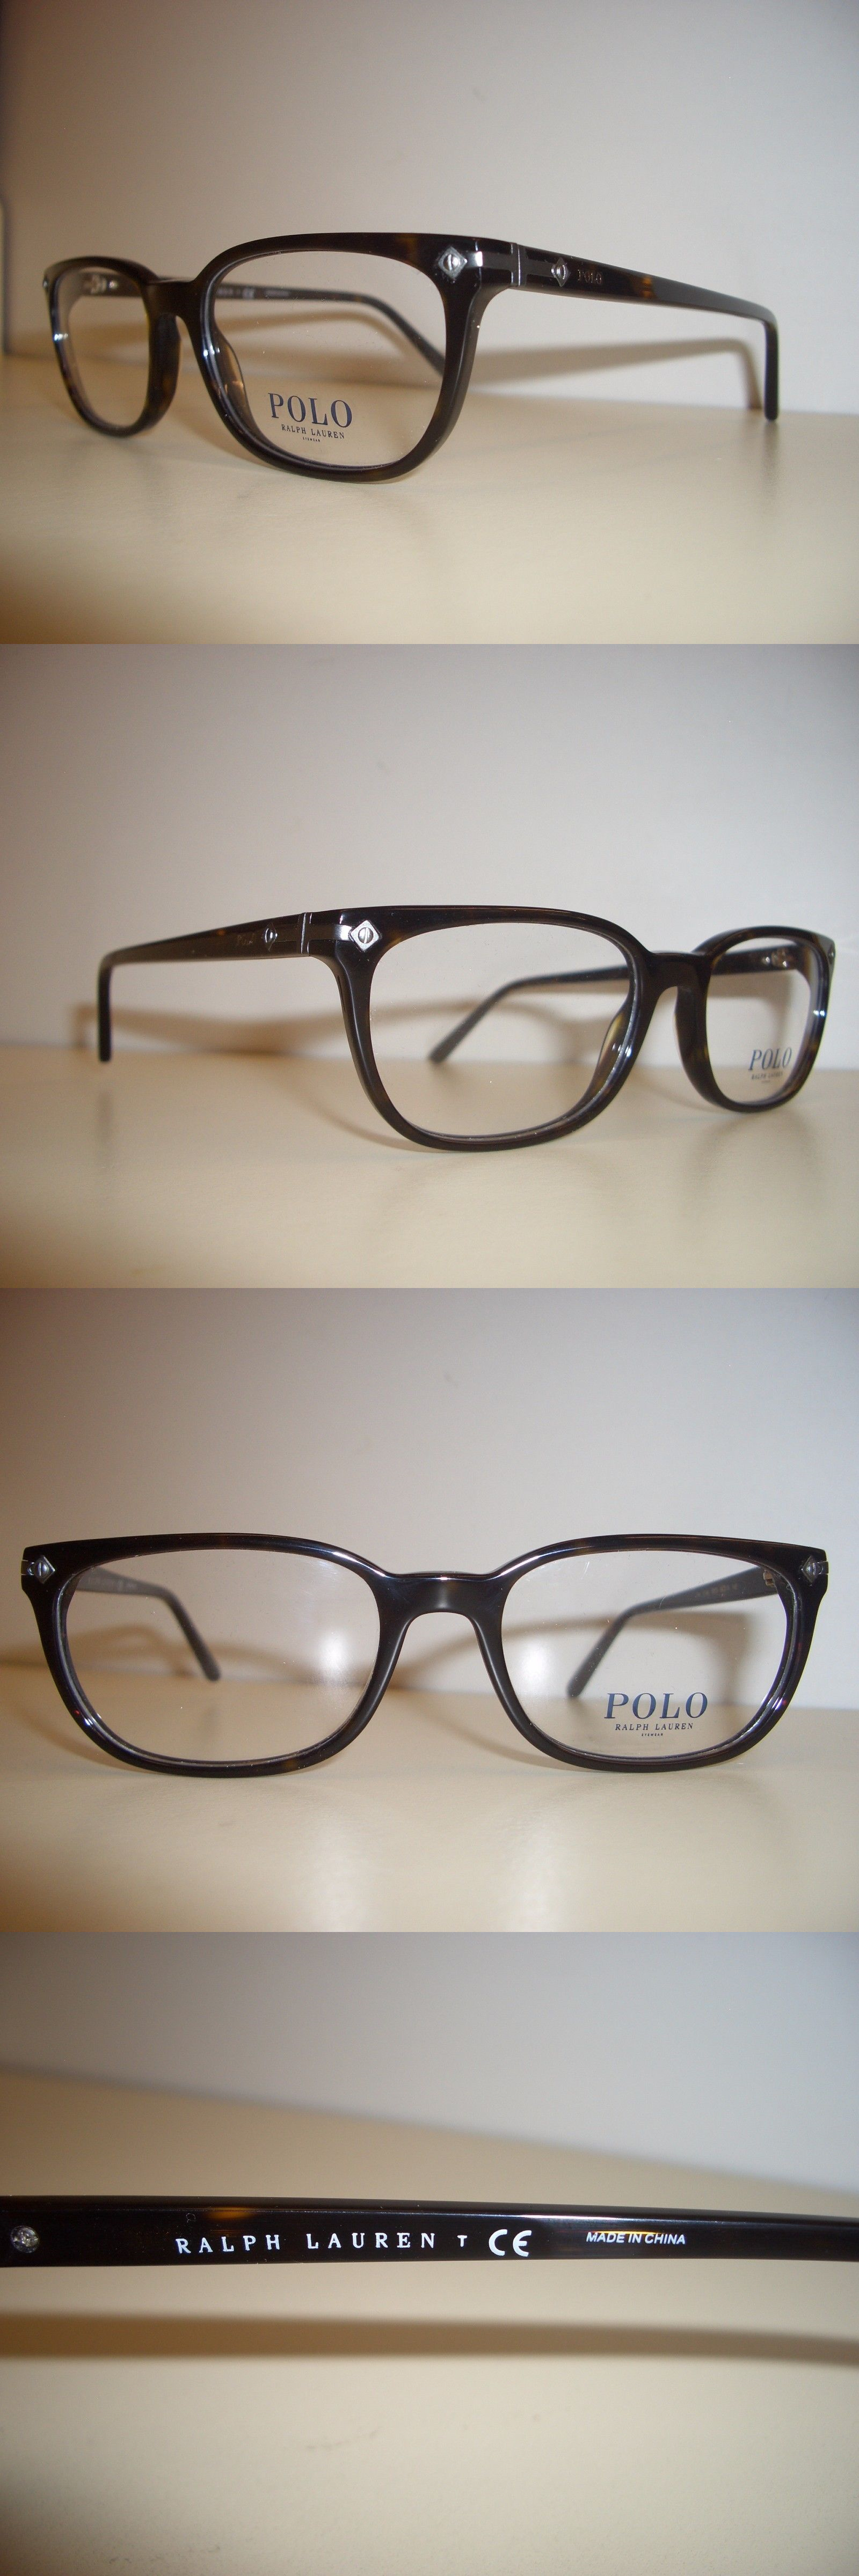 Frame Clear Eyewear Ralph Glasses Fashion Lauren 179240Polo Model f6gyvIb7mY